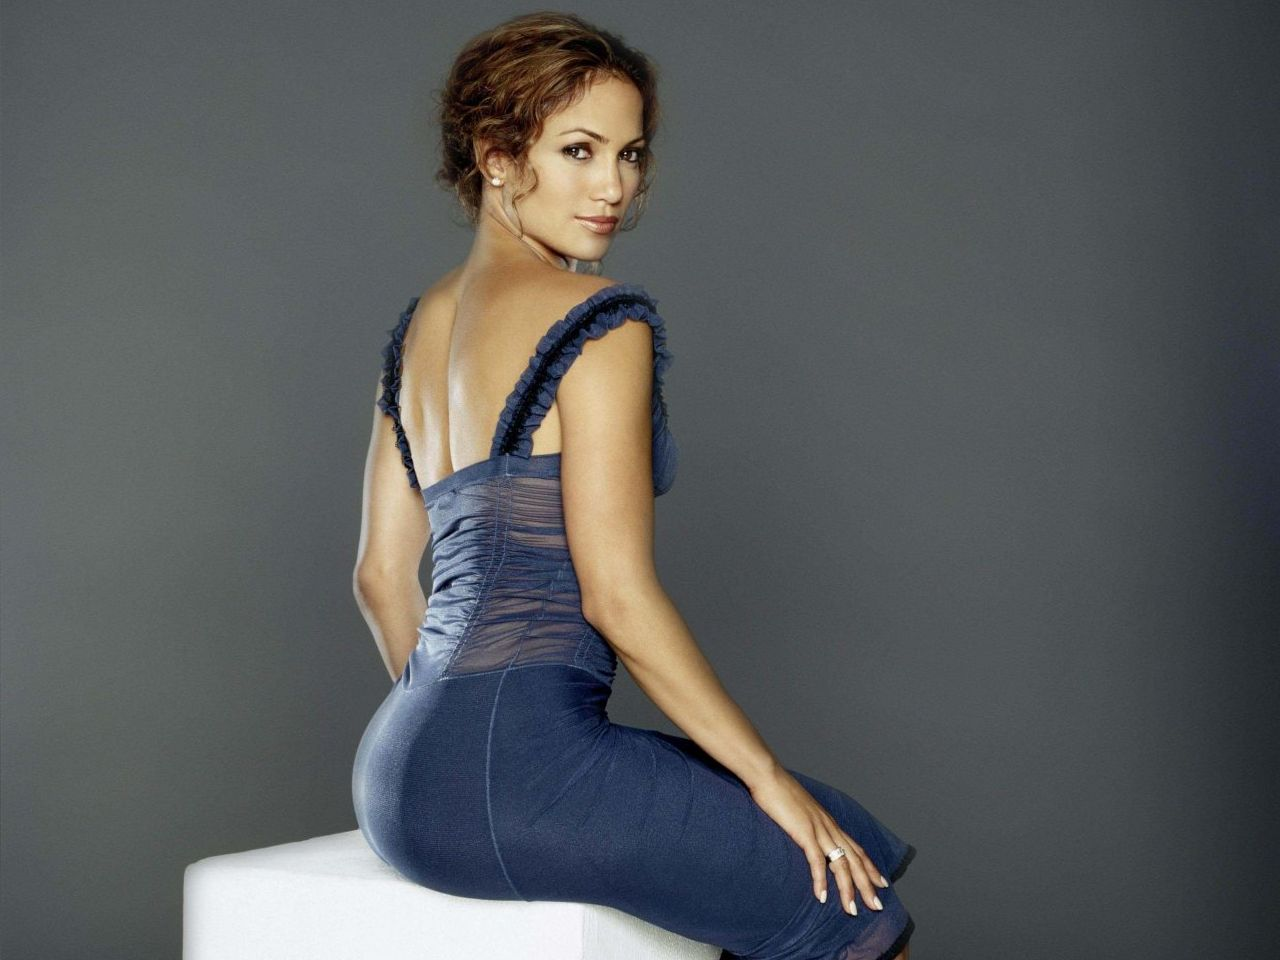 blogspotcom jennifer lopez - photo #20